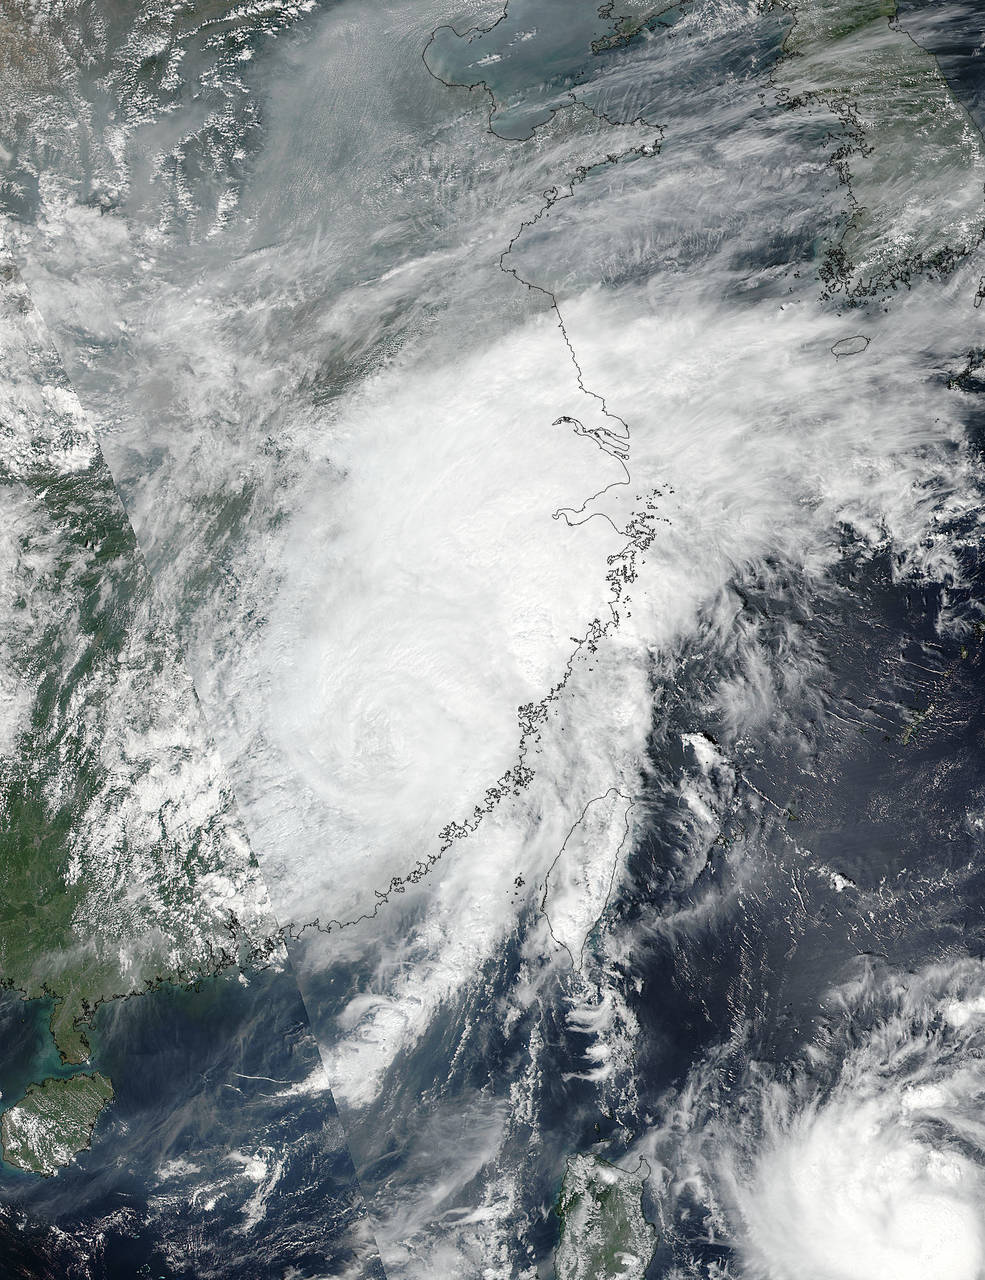 On Sept. 15 at 12:35 a.m. EDT (04:35 UTC) NASA-NOAA's Suomi NPP satellite captured an image of Tropical Storm Meranti as it was making landfall in southeastern China. (Credits: NASA Goddard MODIS Rapid Response/NOAA)